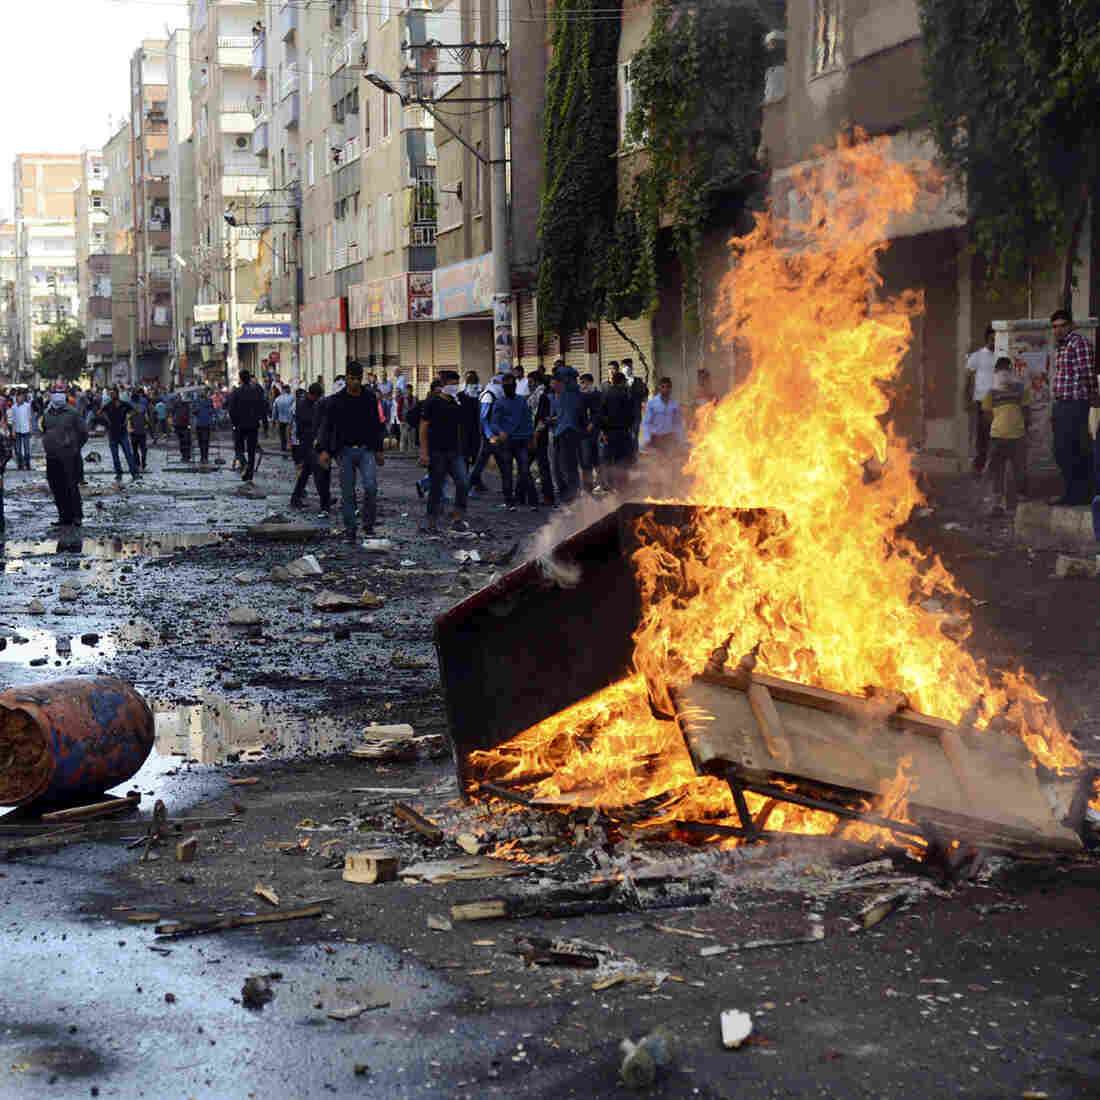 Kurdish protesters set fire to a barricade set up to block the street as they clash with riot police in Diyarbakir, Turkey, on Wednesday.